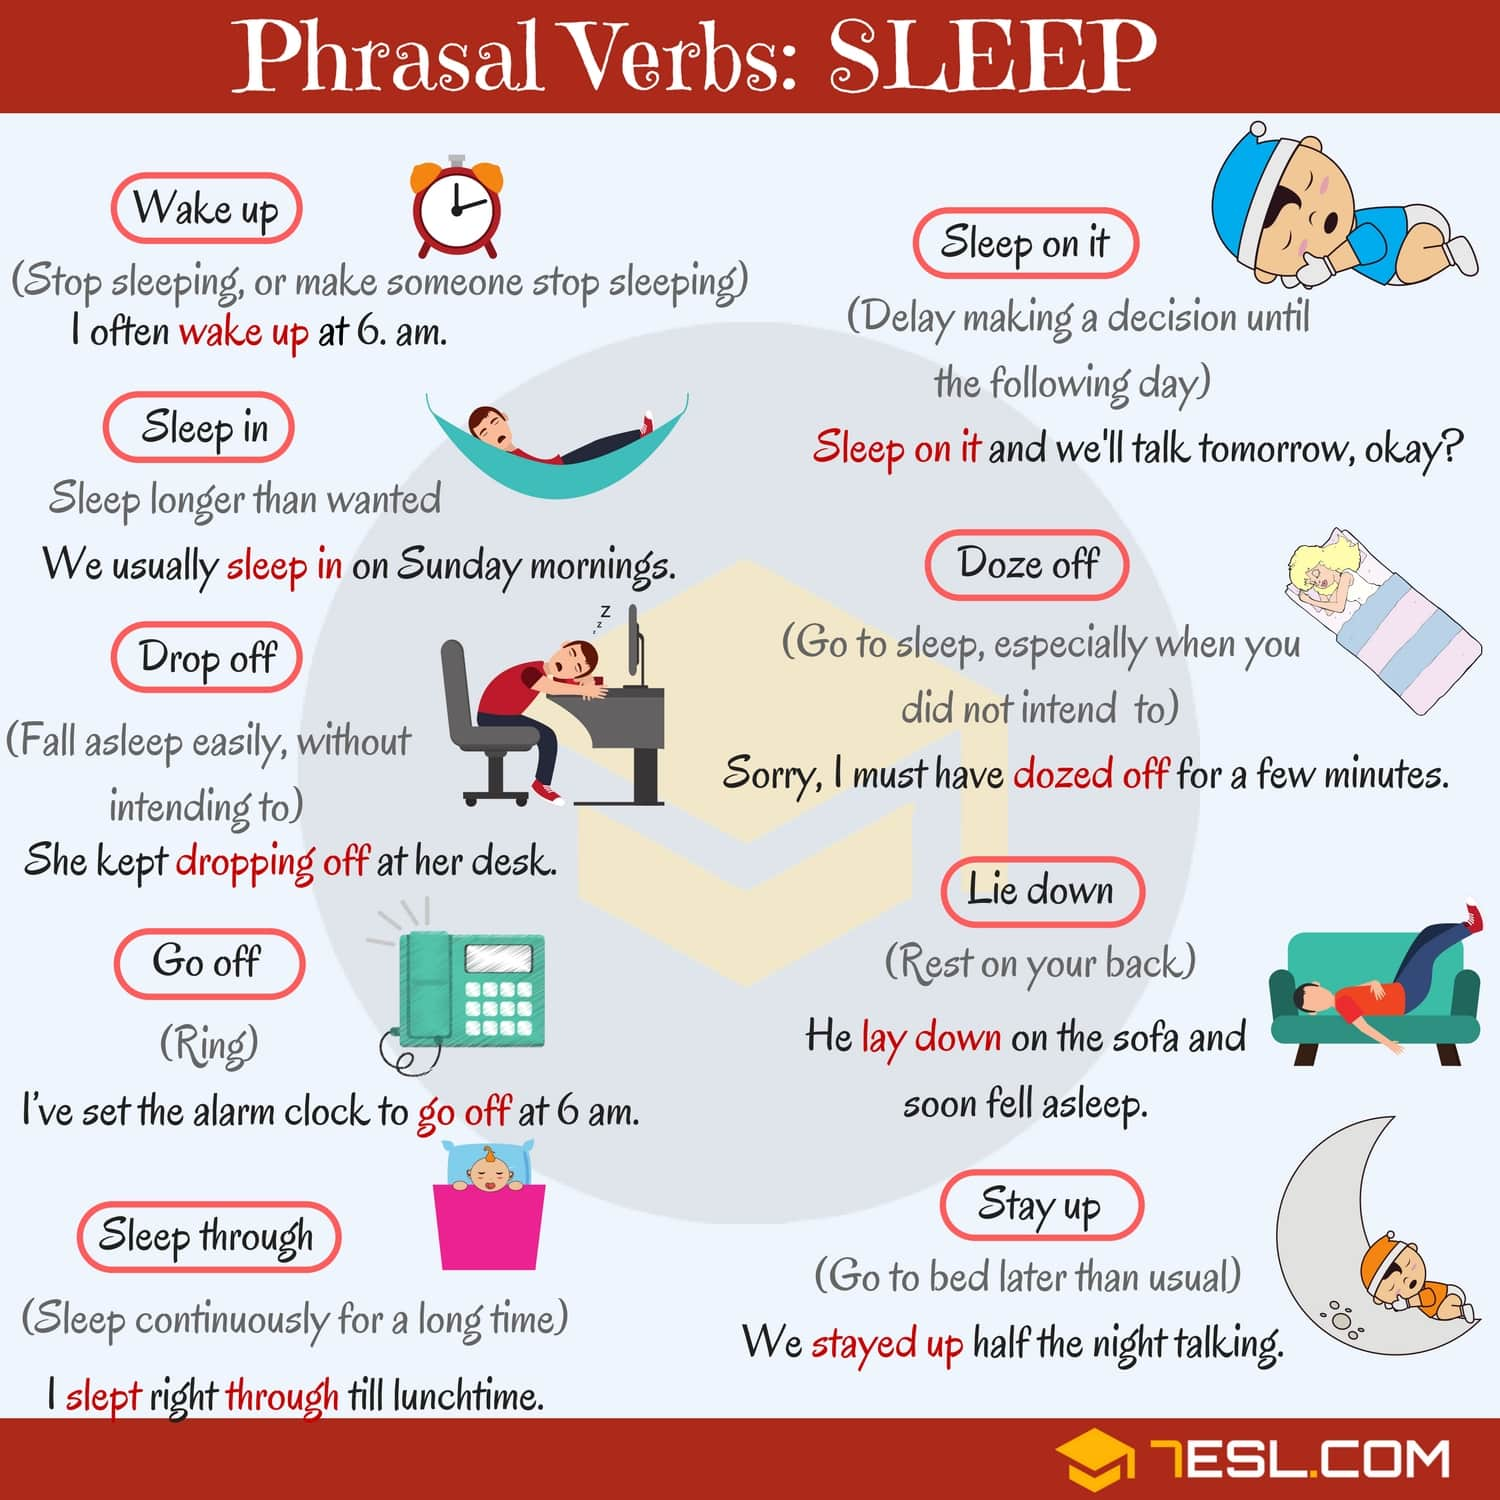 Sleep Vocabulary 12 Common Sleep Phrasal Verbs